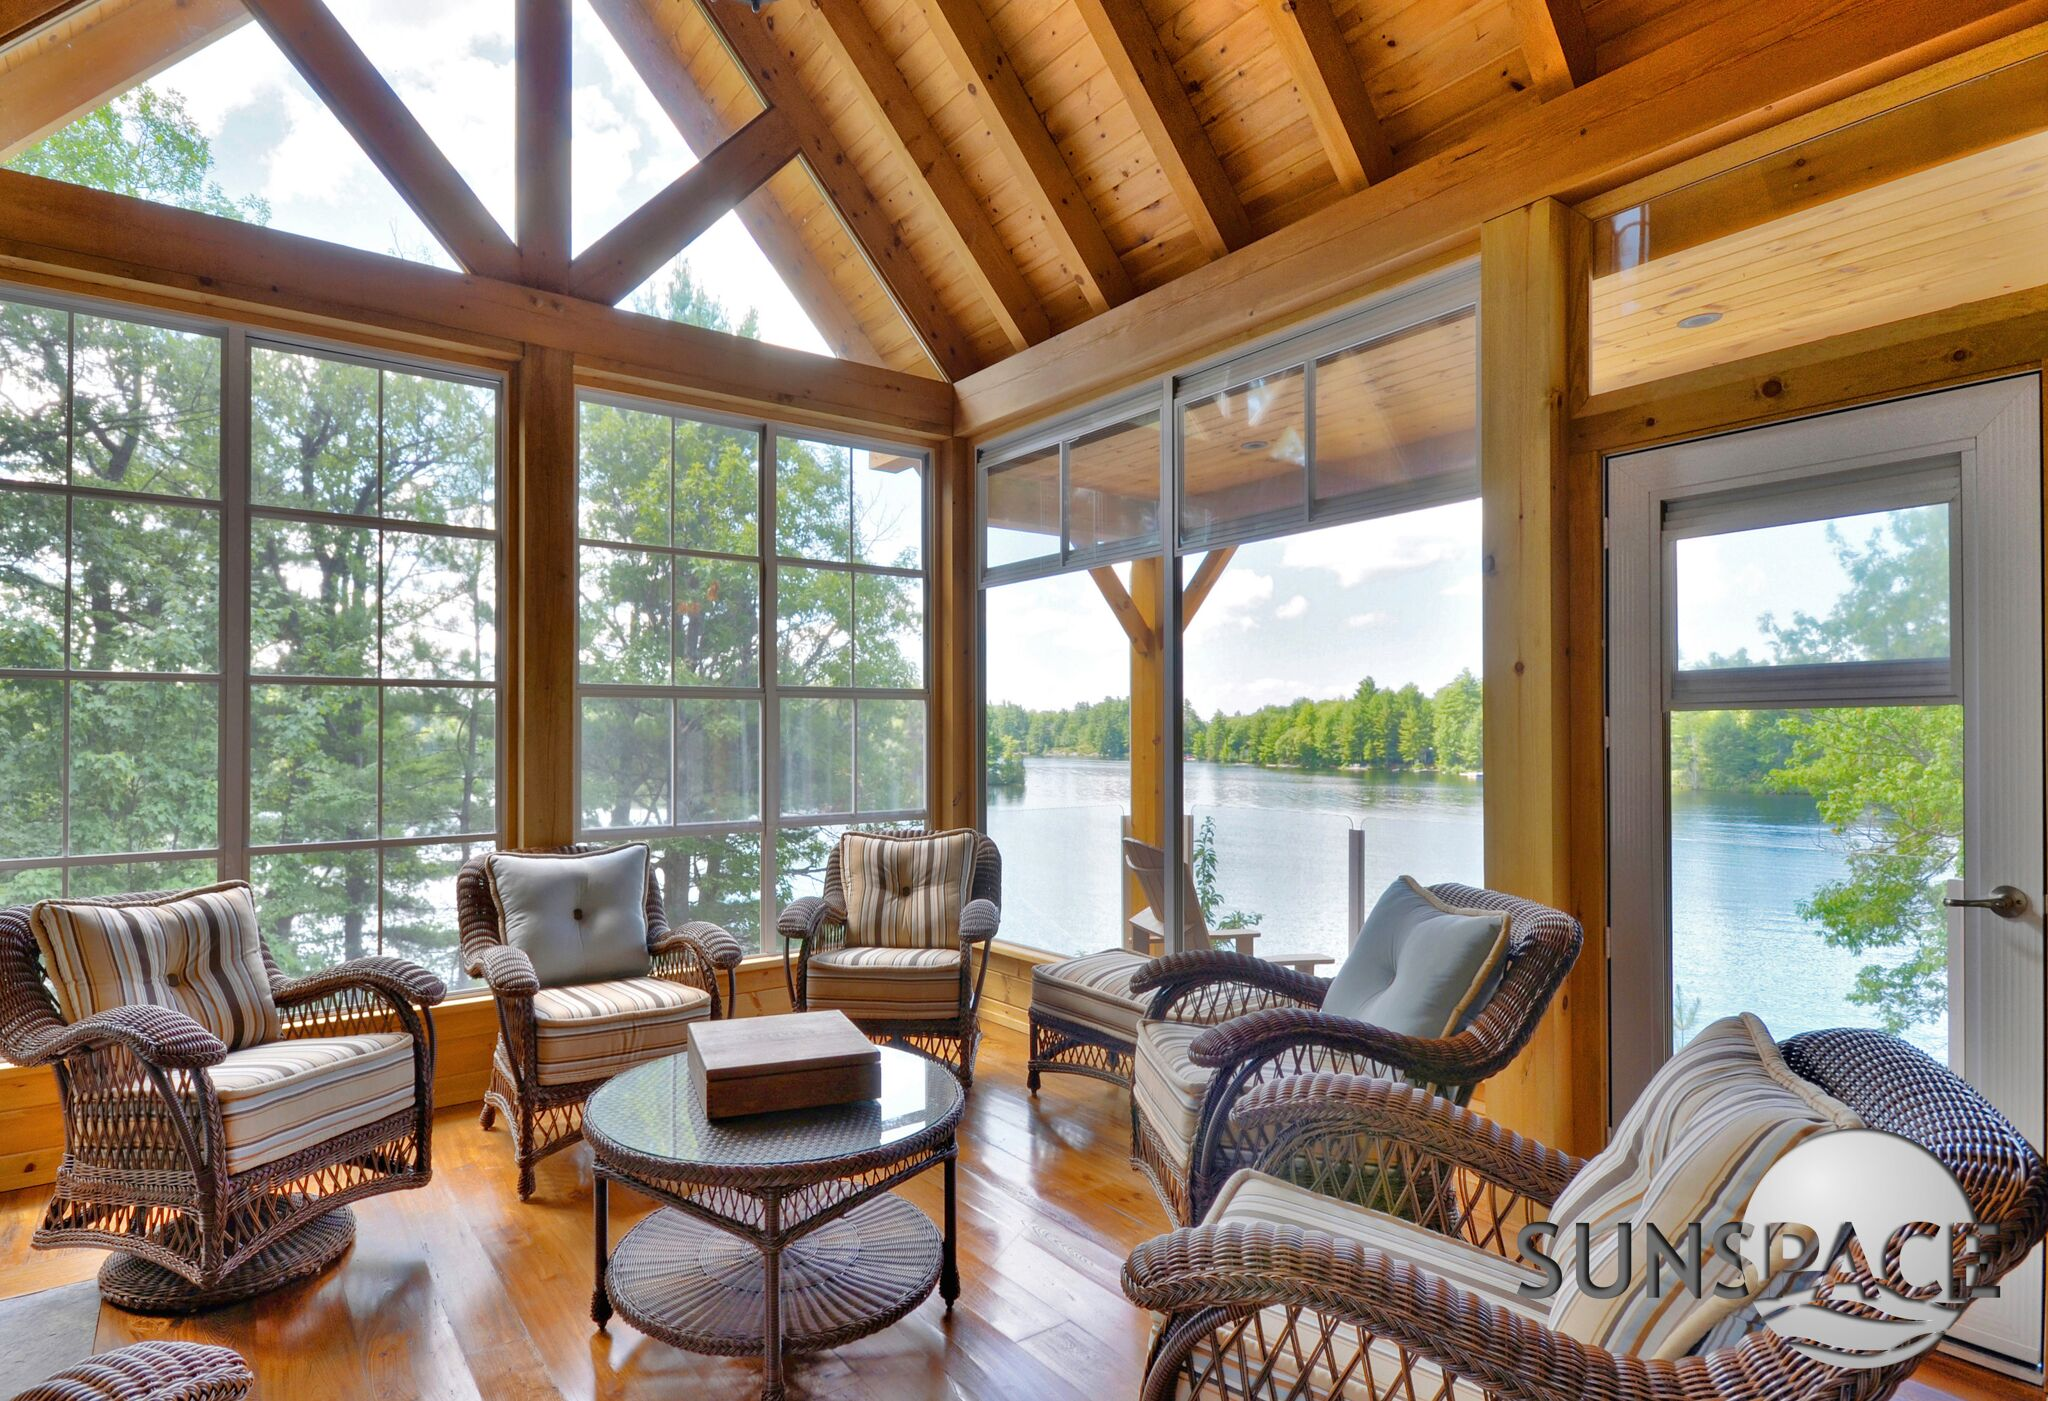 Itu0027s Time To Discover Fine Porch Living! Sunspace Texas Allows You The  Ability To Customize Your Outdoor Living Space, Eliminating Dust, Insects,  ...